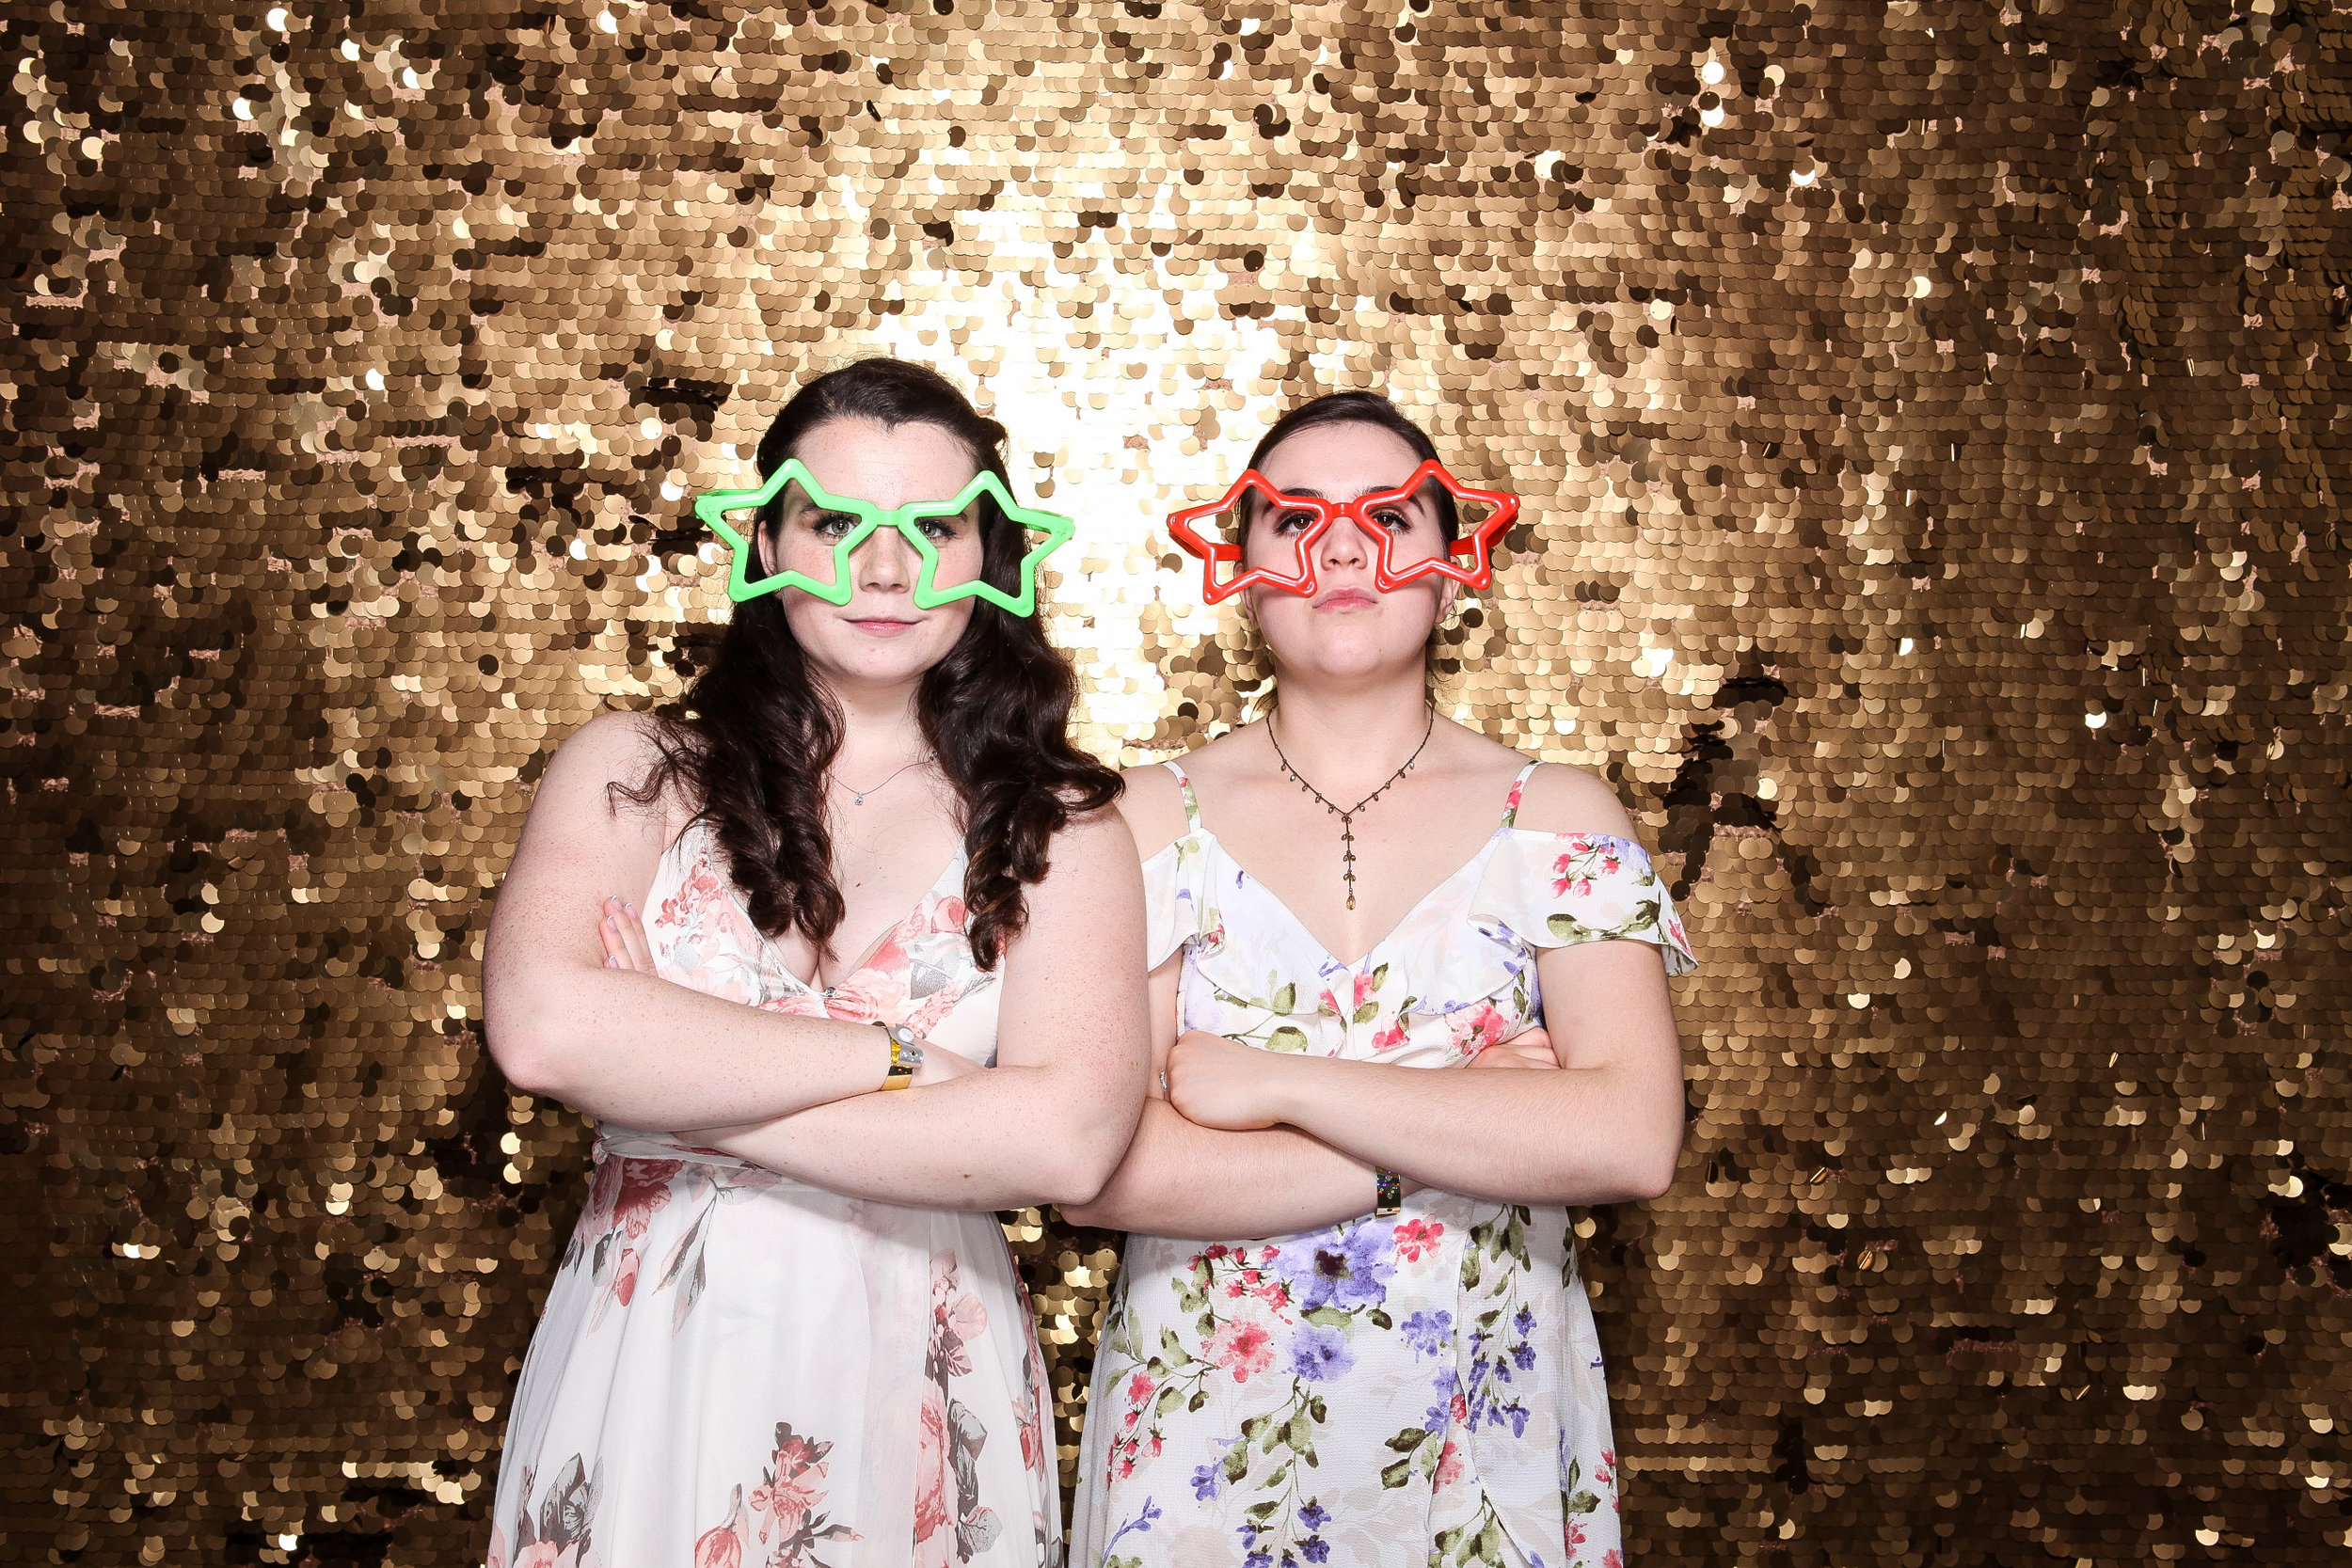 20190503_Adelphi_Senior_Formal-220.jpg